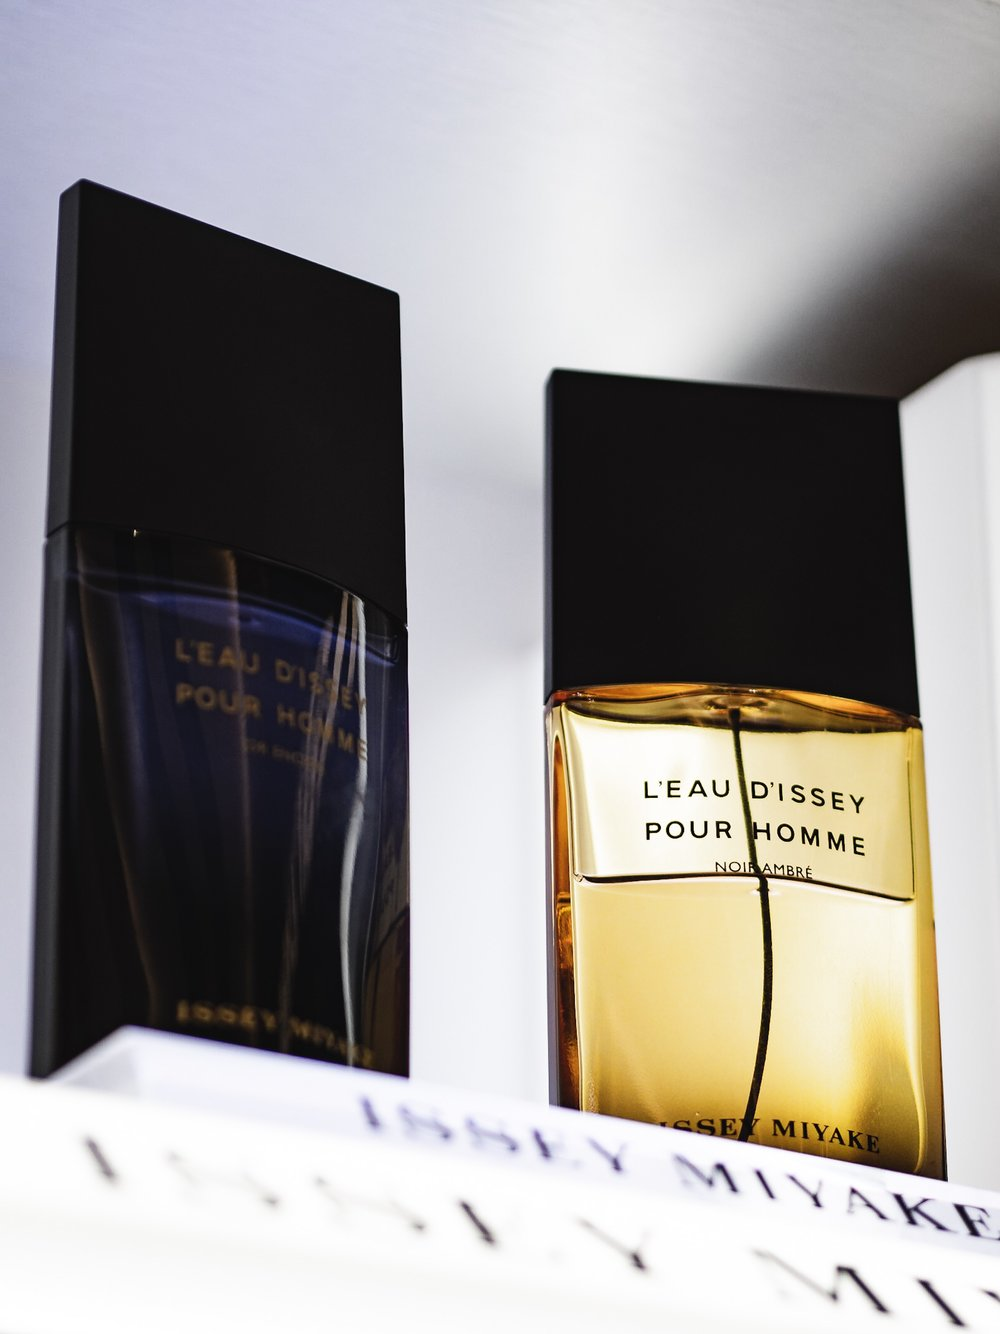 Heathrow Airport World Duty Free Fragrance Issey Miyake L'eau D'issey Pour Homme